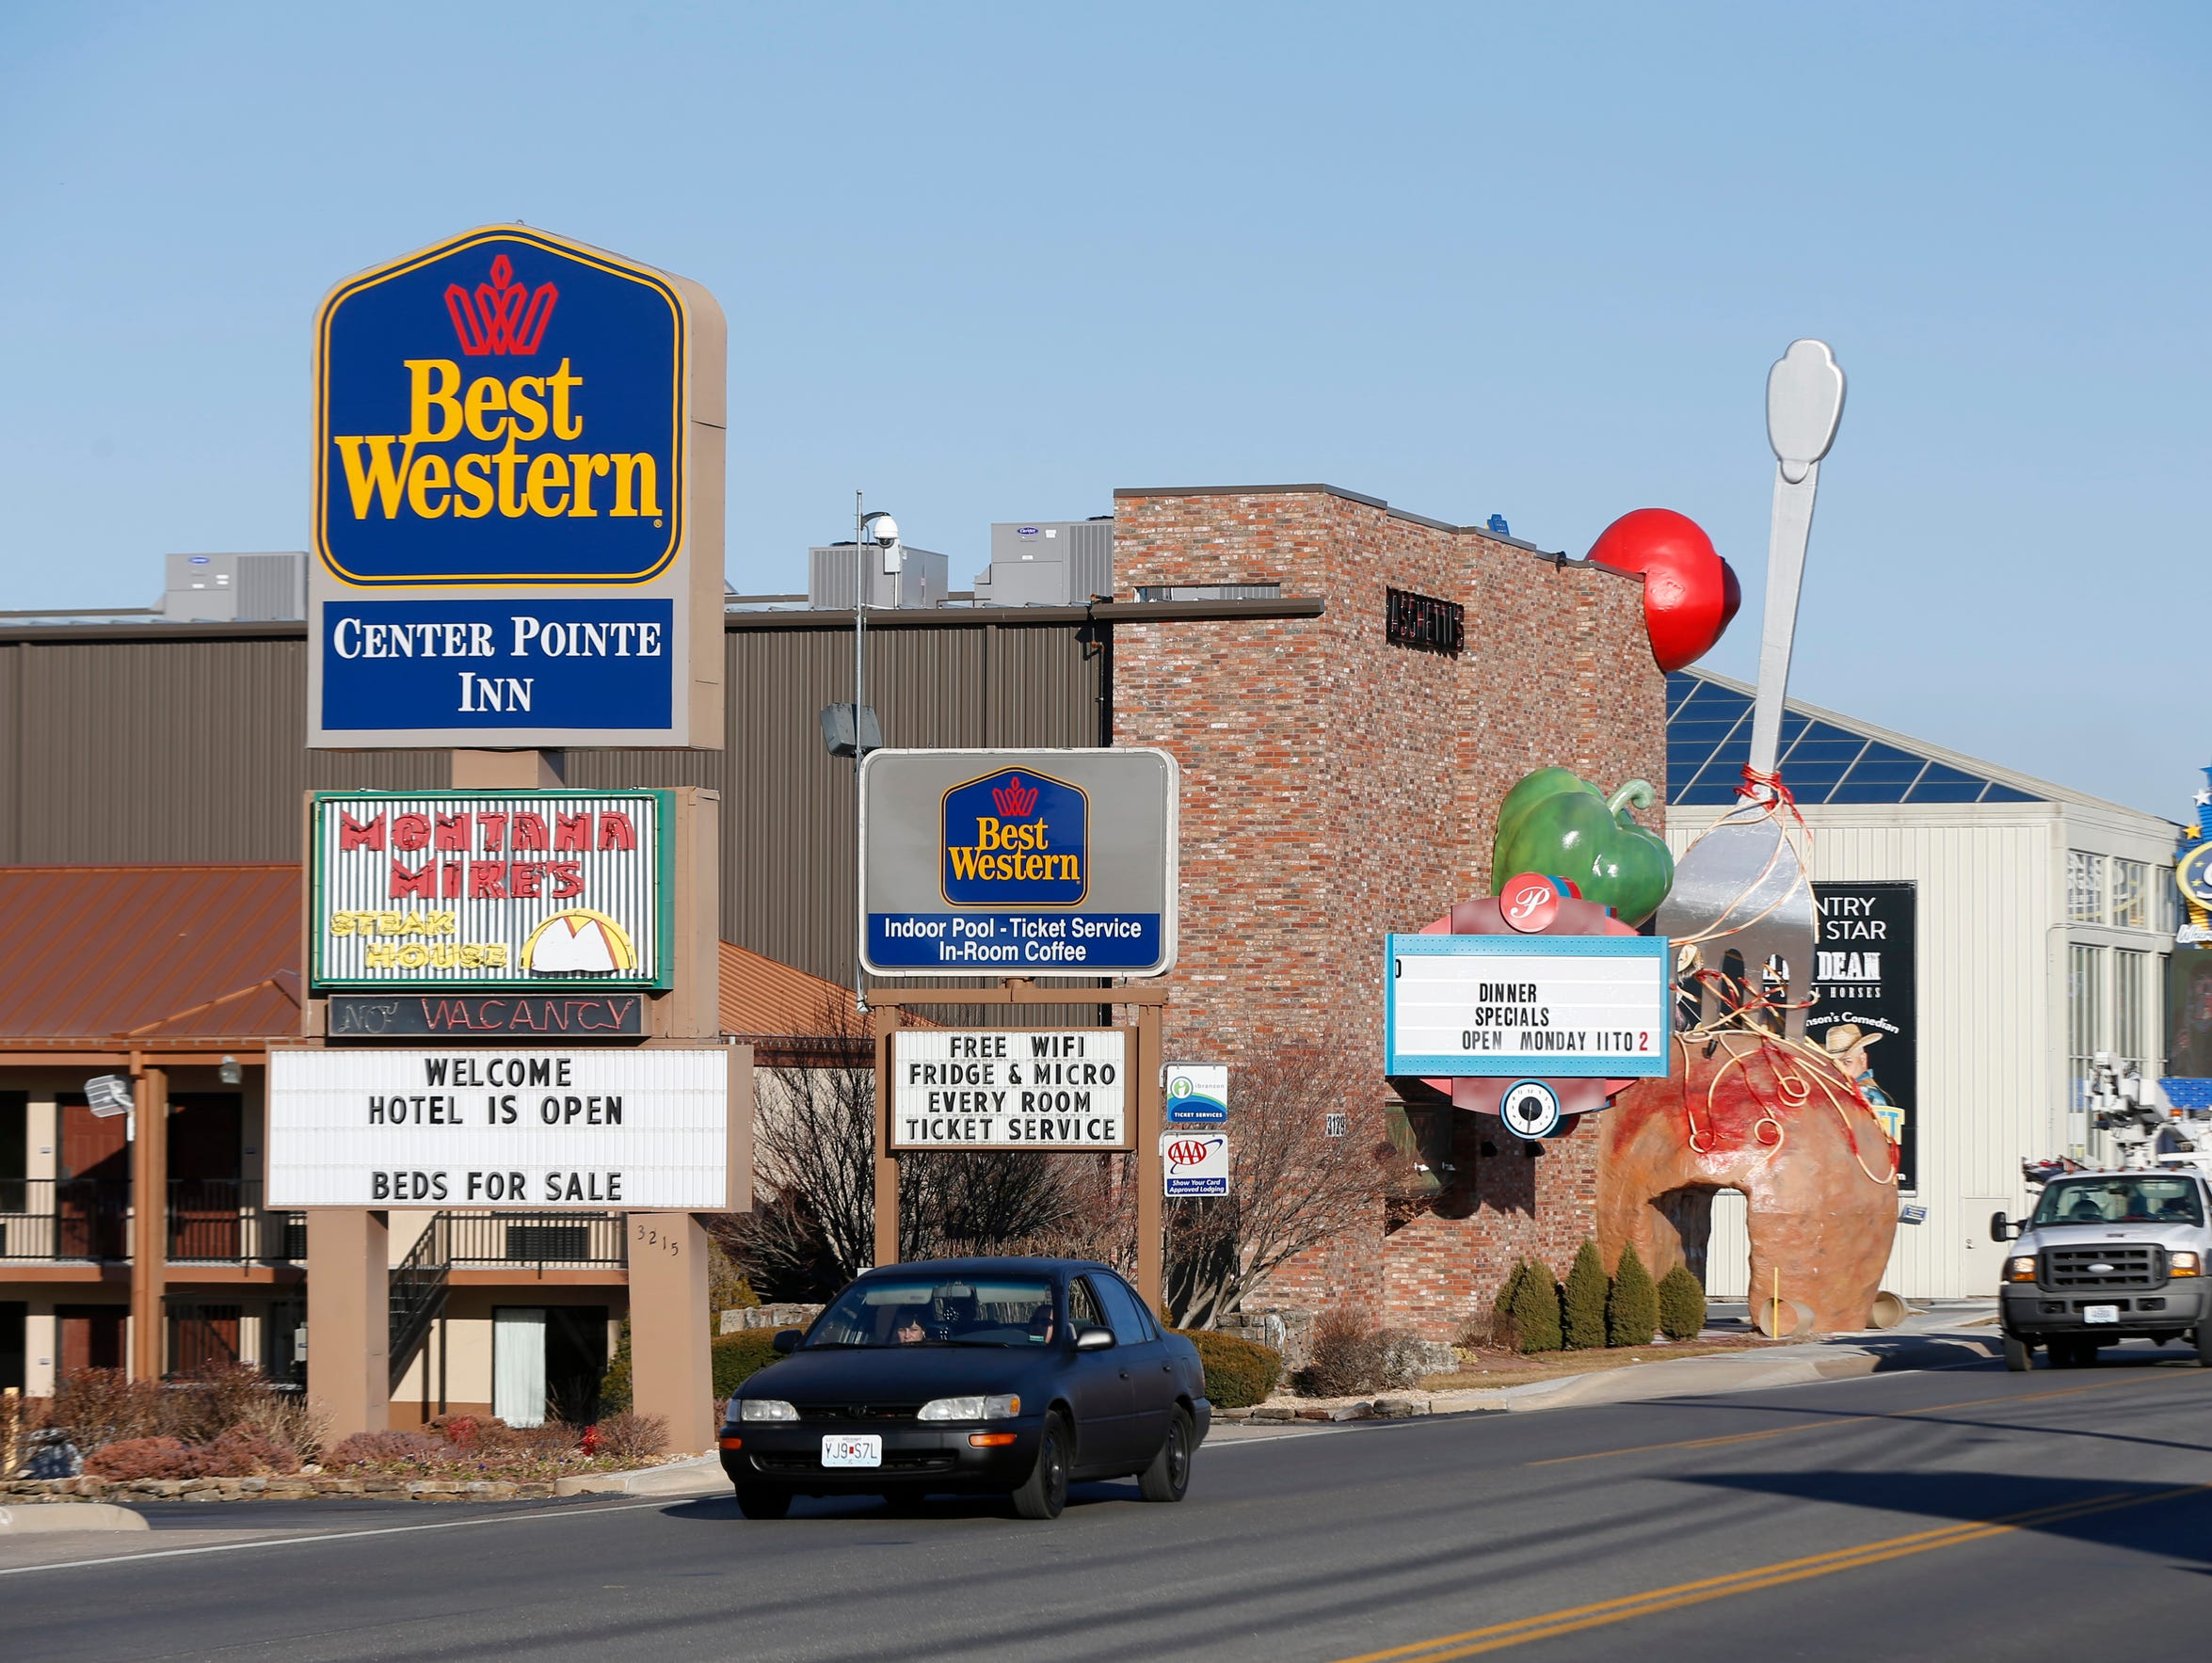 The Best Western Center Pointe Inn is located at 3215